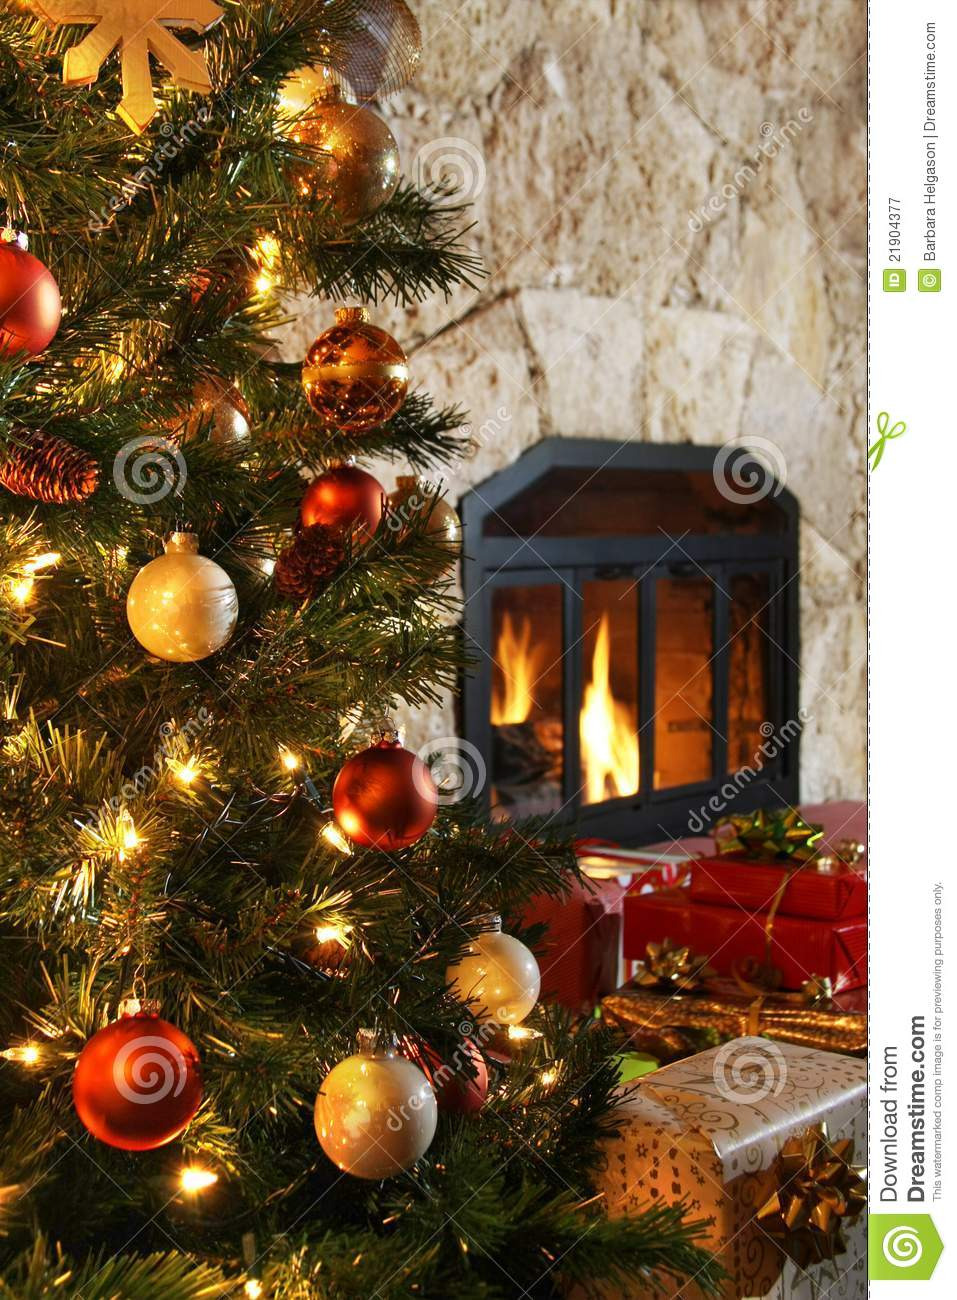 Christmas Tree And Fireplace Stock Image - Image of warm ...